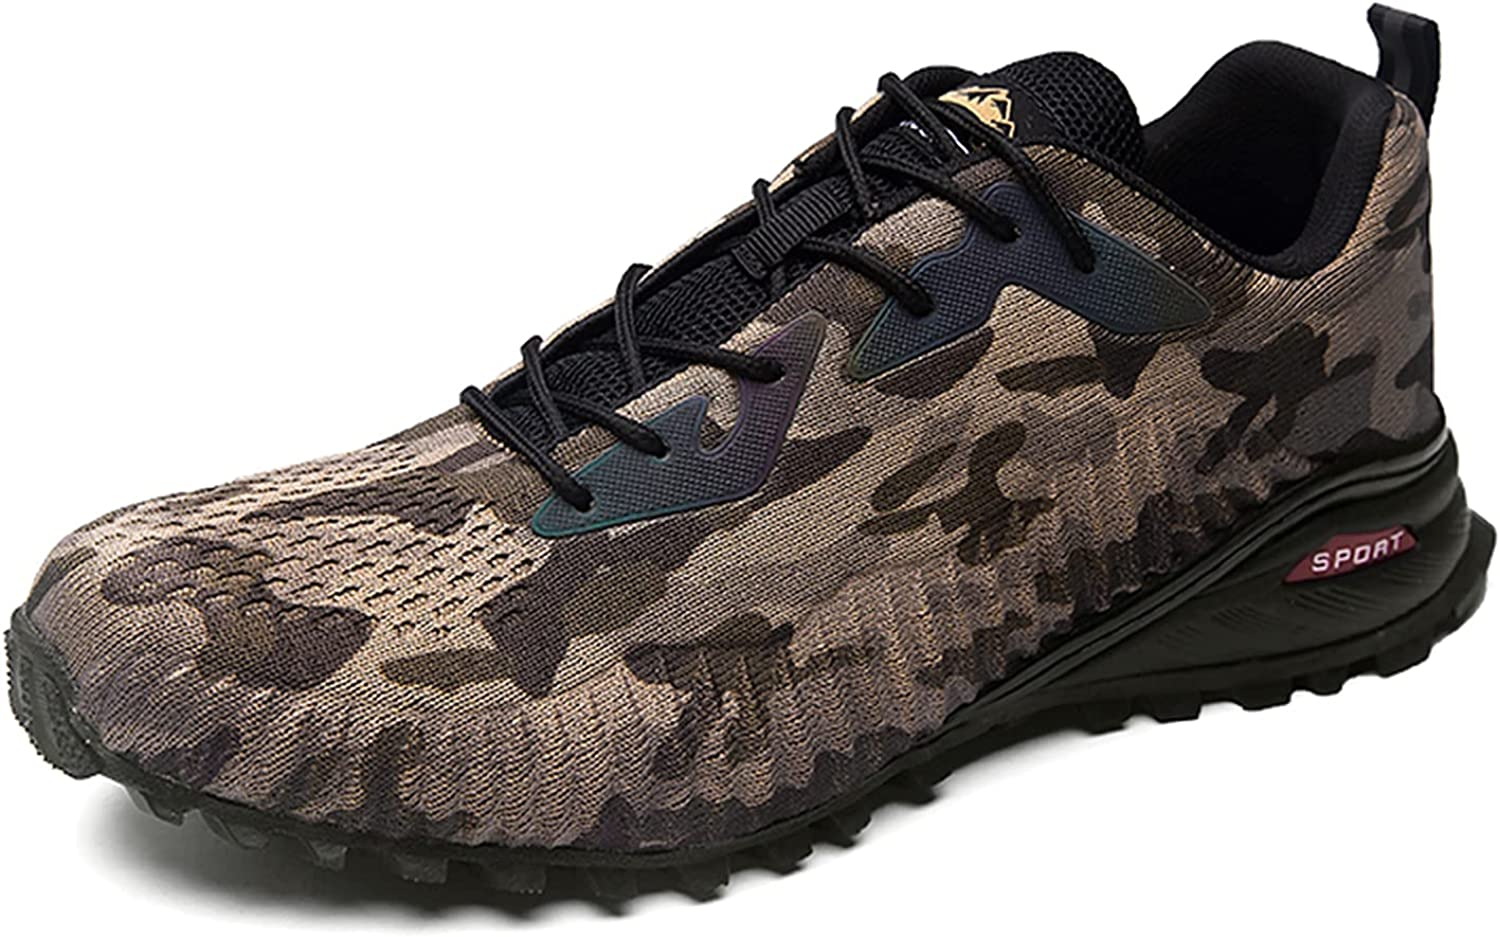 Kricely Weekly update Men's Women Trail Running Tennis Hiking Many popular brands Shoes Breathable